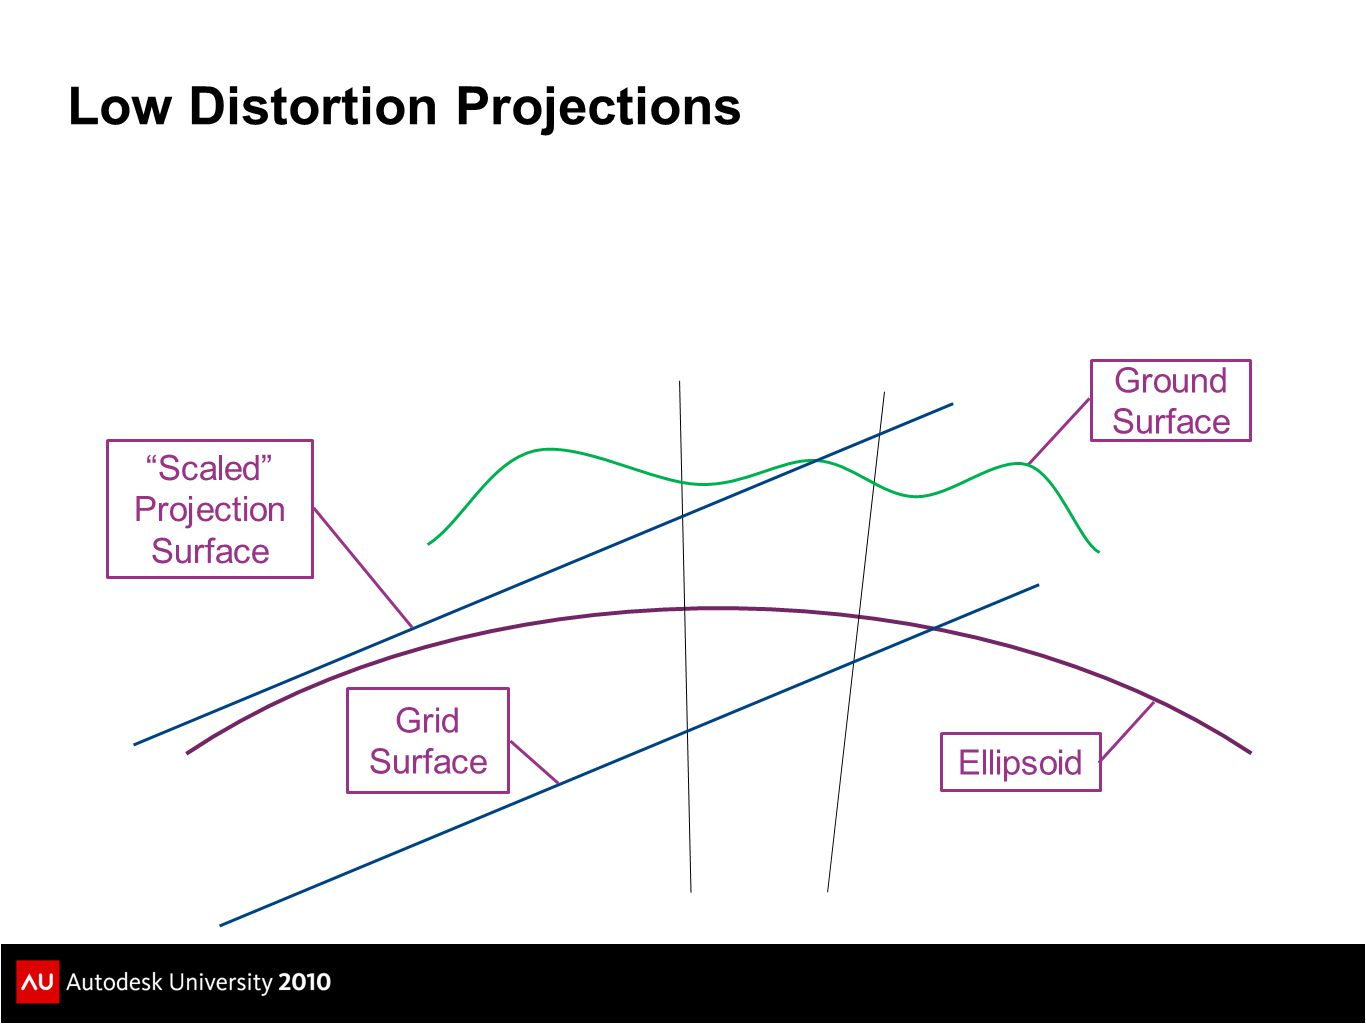 Low Distortion Projections